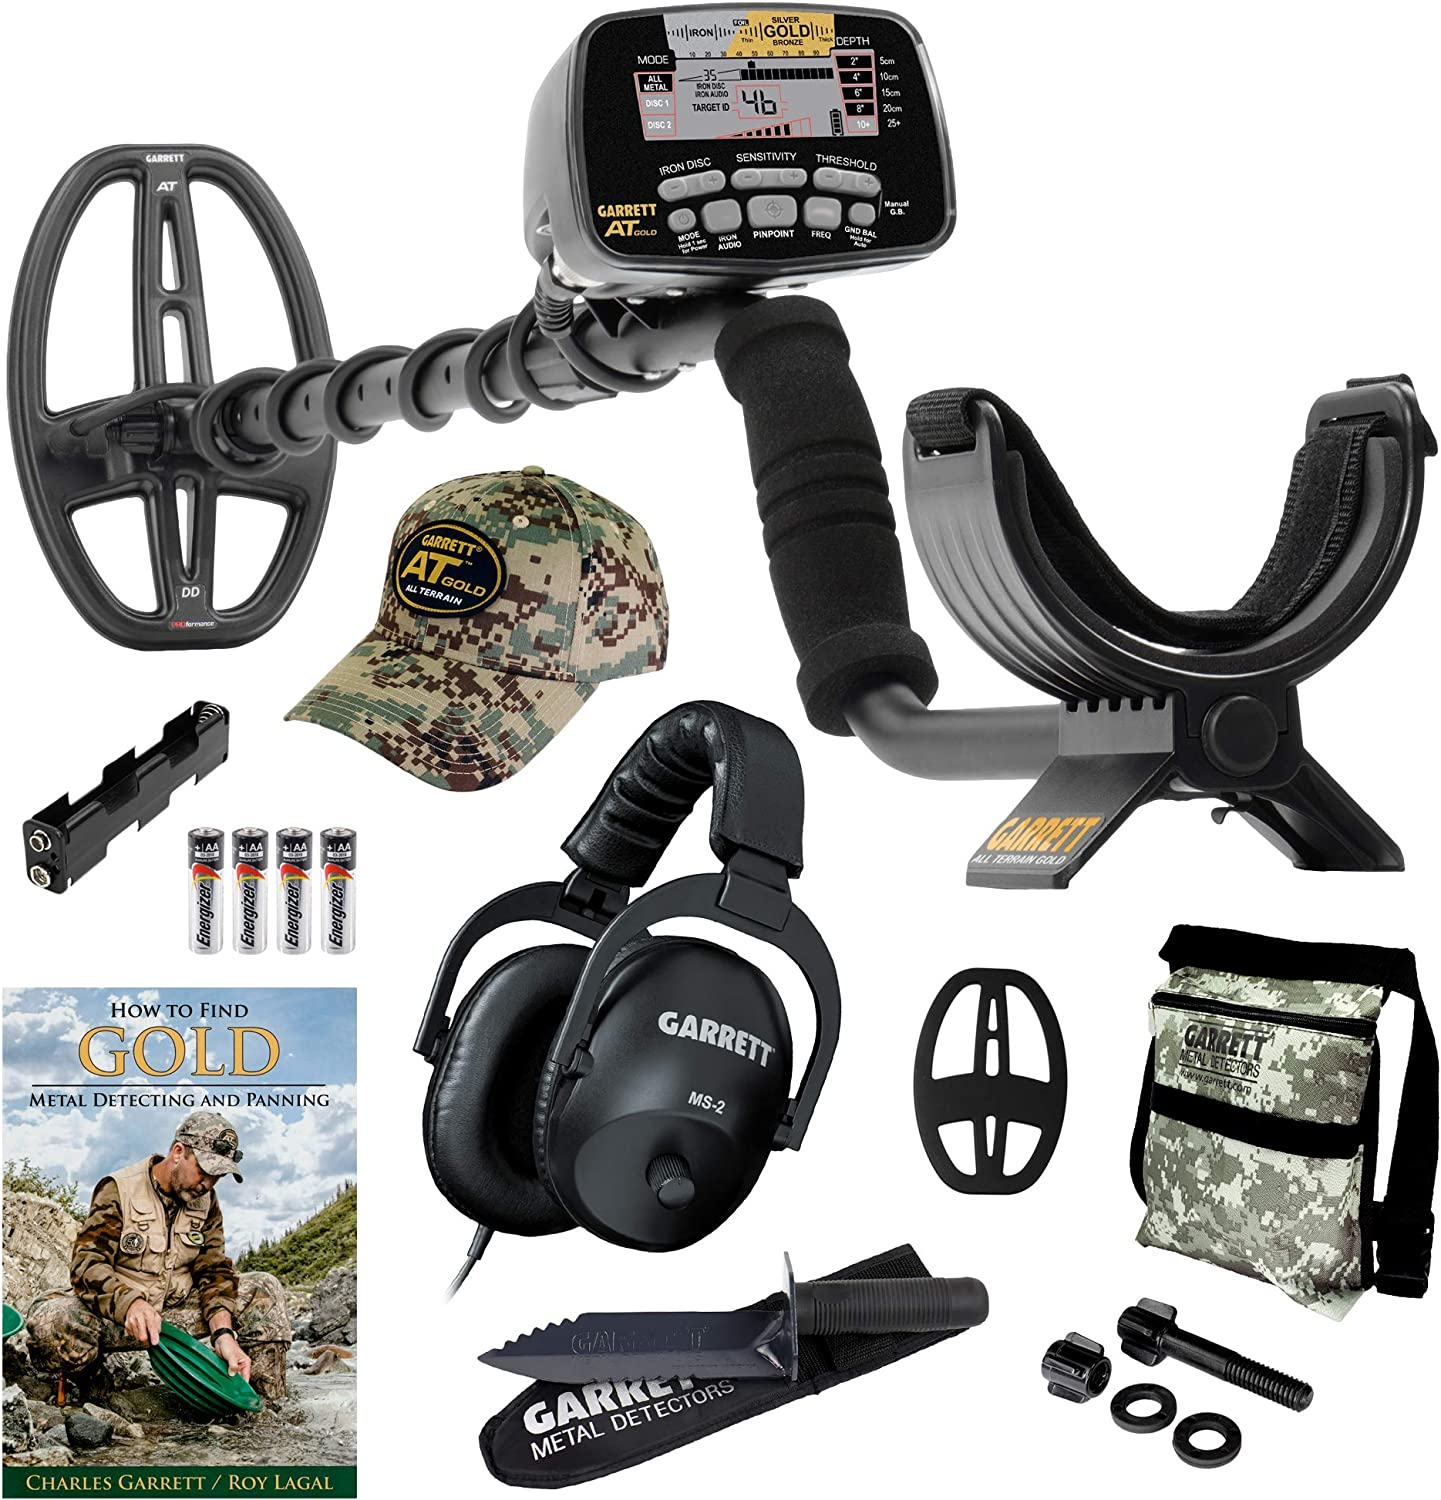 GARRETT AT GOLD METAL DETECTOR W EDGE DIGGER CAMO POUCH BOOK INSTRUCTION DVD by MDS-ATGOLD-DIGGER-CAMO